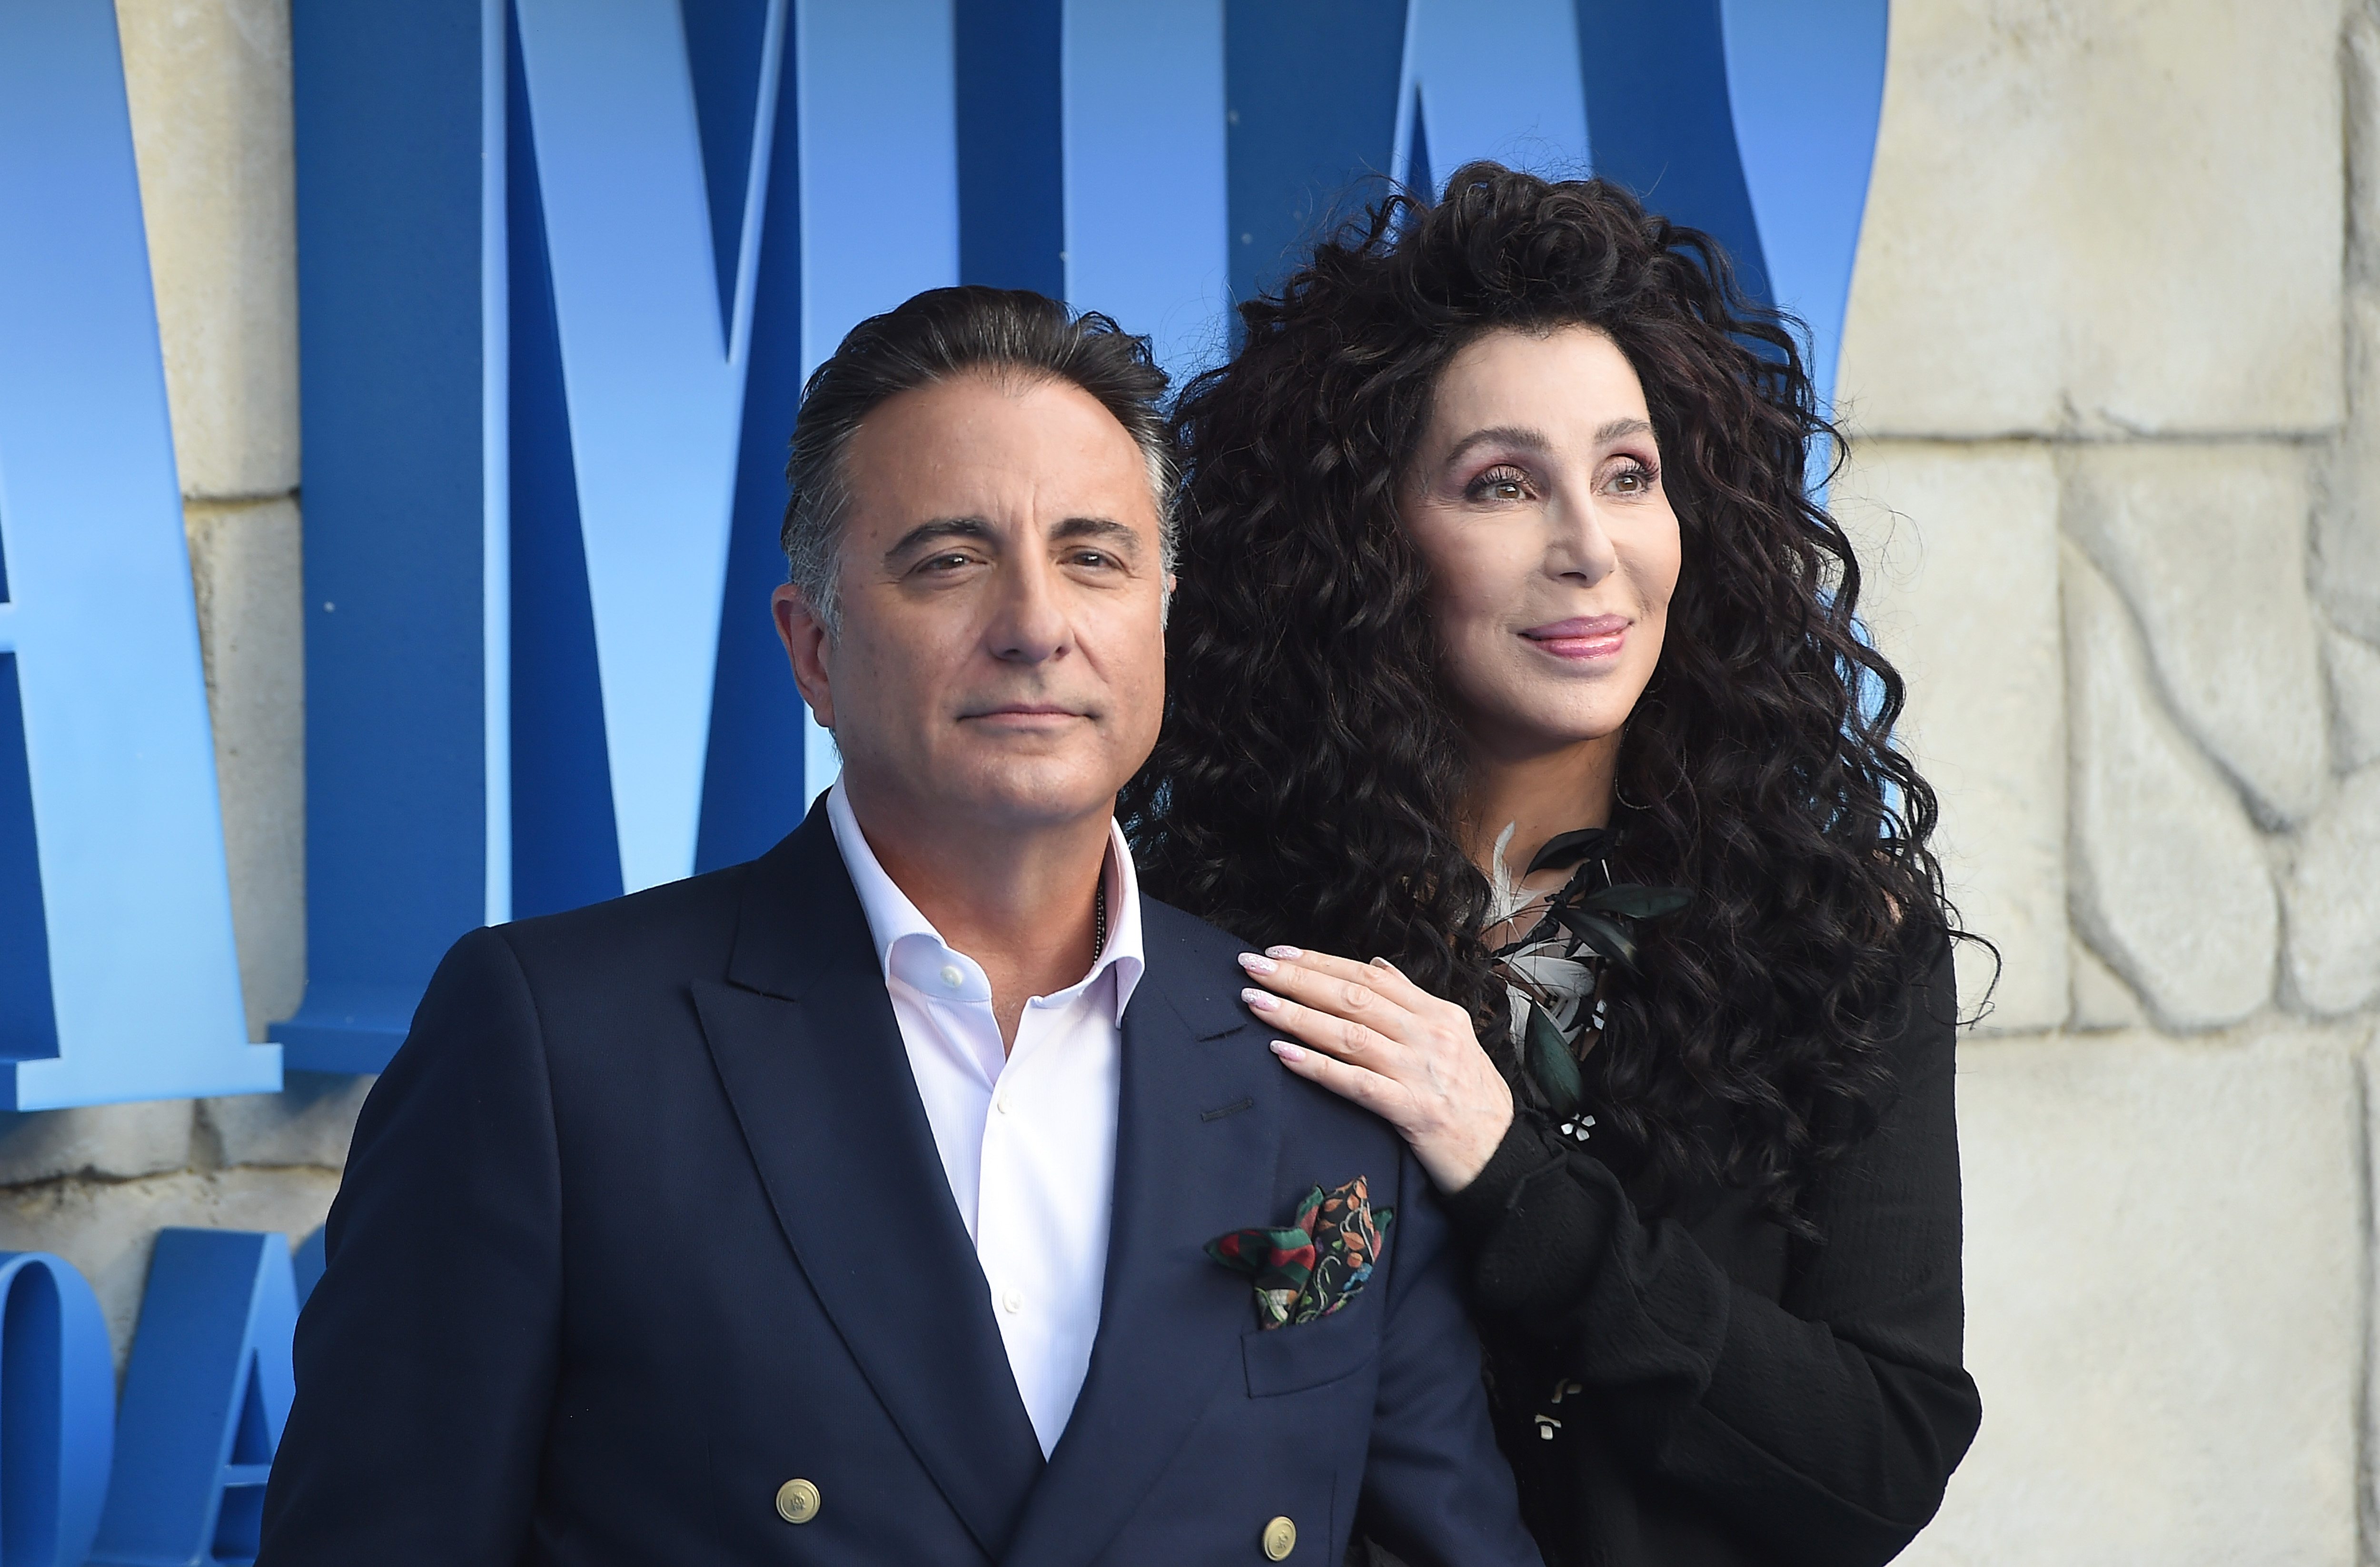 Andy Garcia and Cher attend the 'Mamma Mia! Here We Go Again' world premiere at the Eventim Apollo, Hammersmith on July 16, 2018 in London, England.